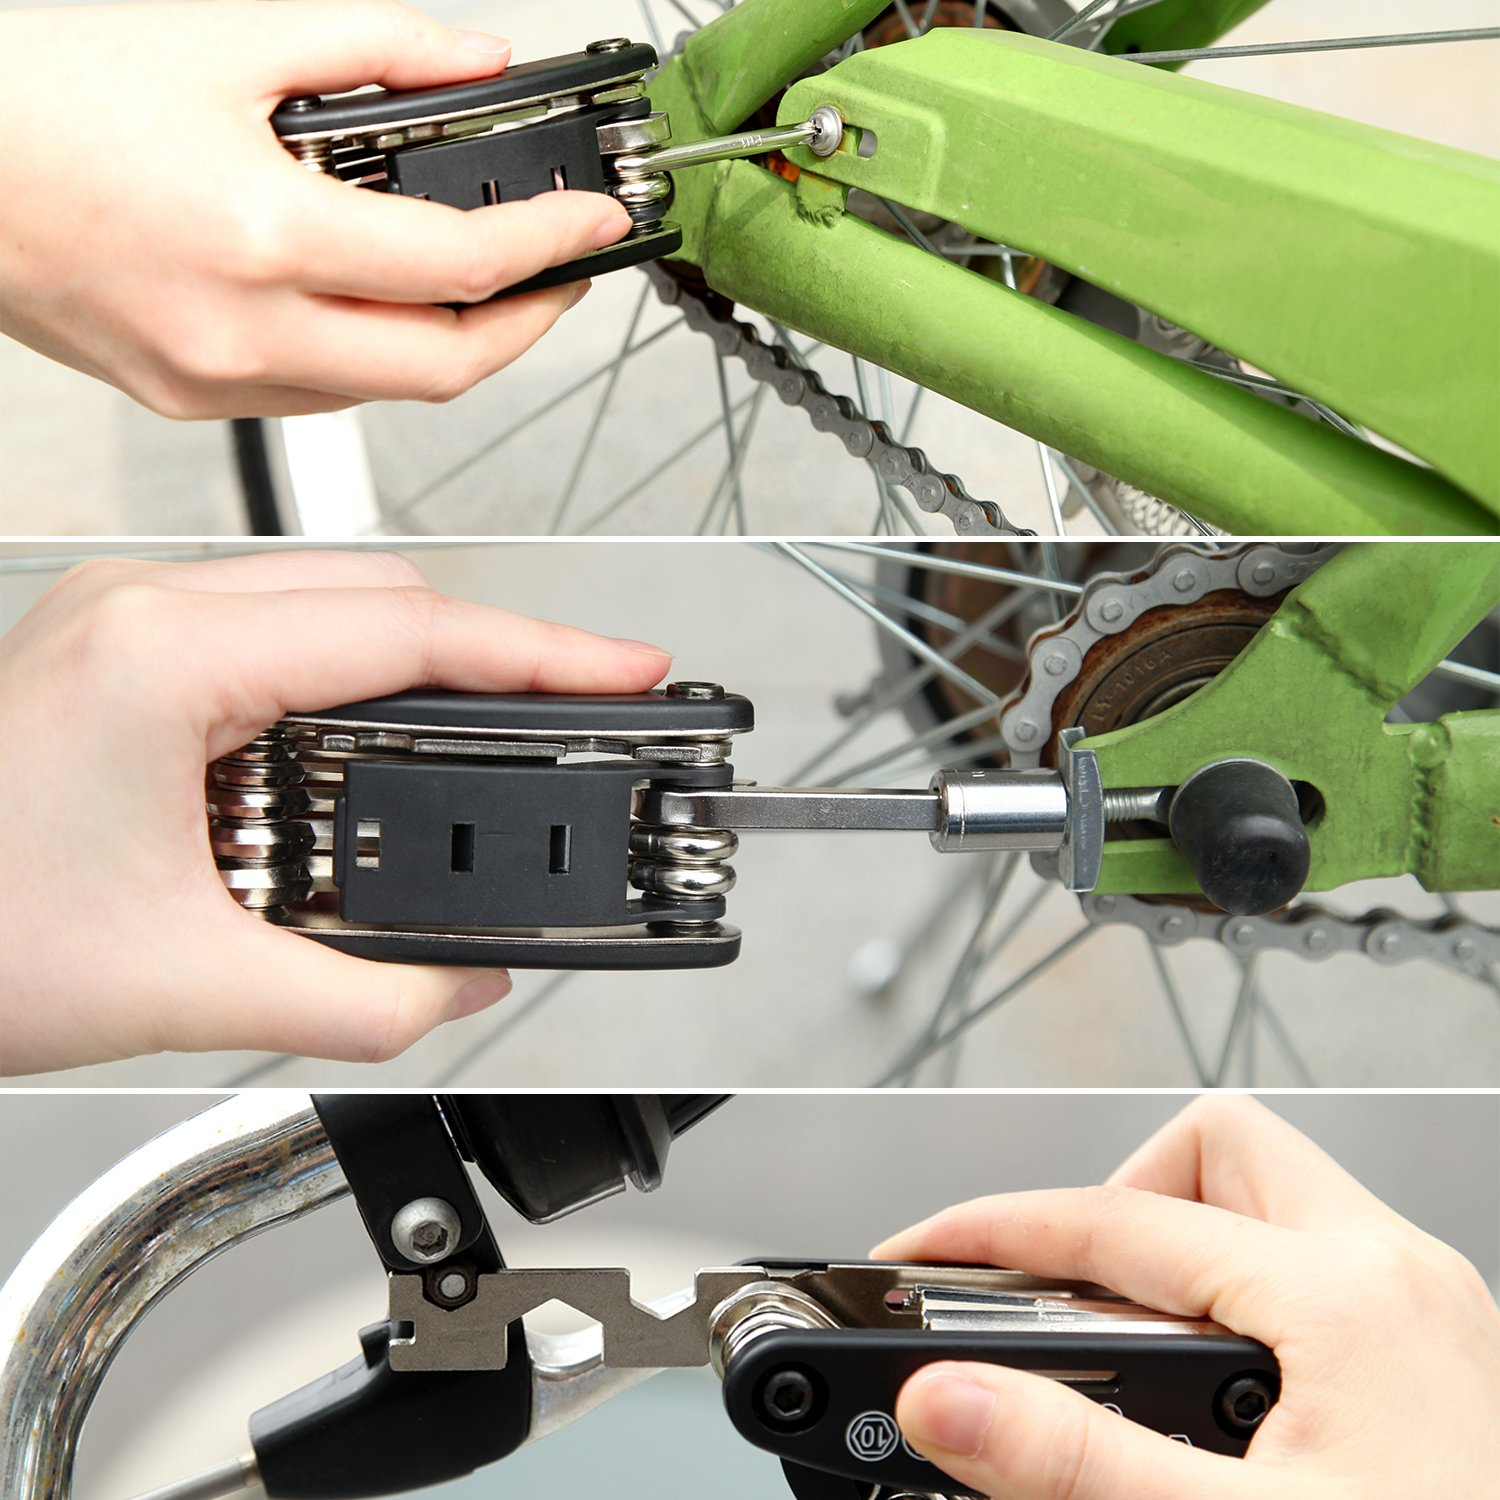 iBuger Bike Repair Kit, Bicycle 16 in 1 Multifunctional Cycling Repair Tools and Quick Puncture Tire Repair Kits for Cyclist